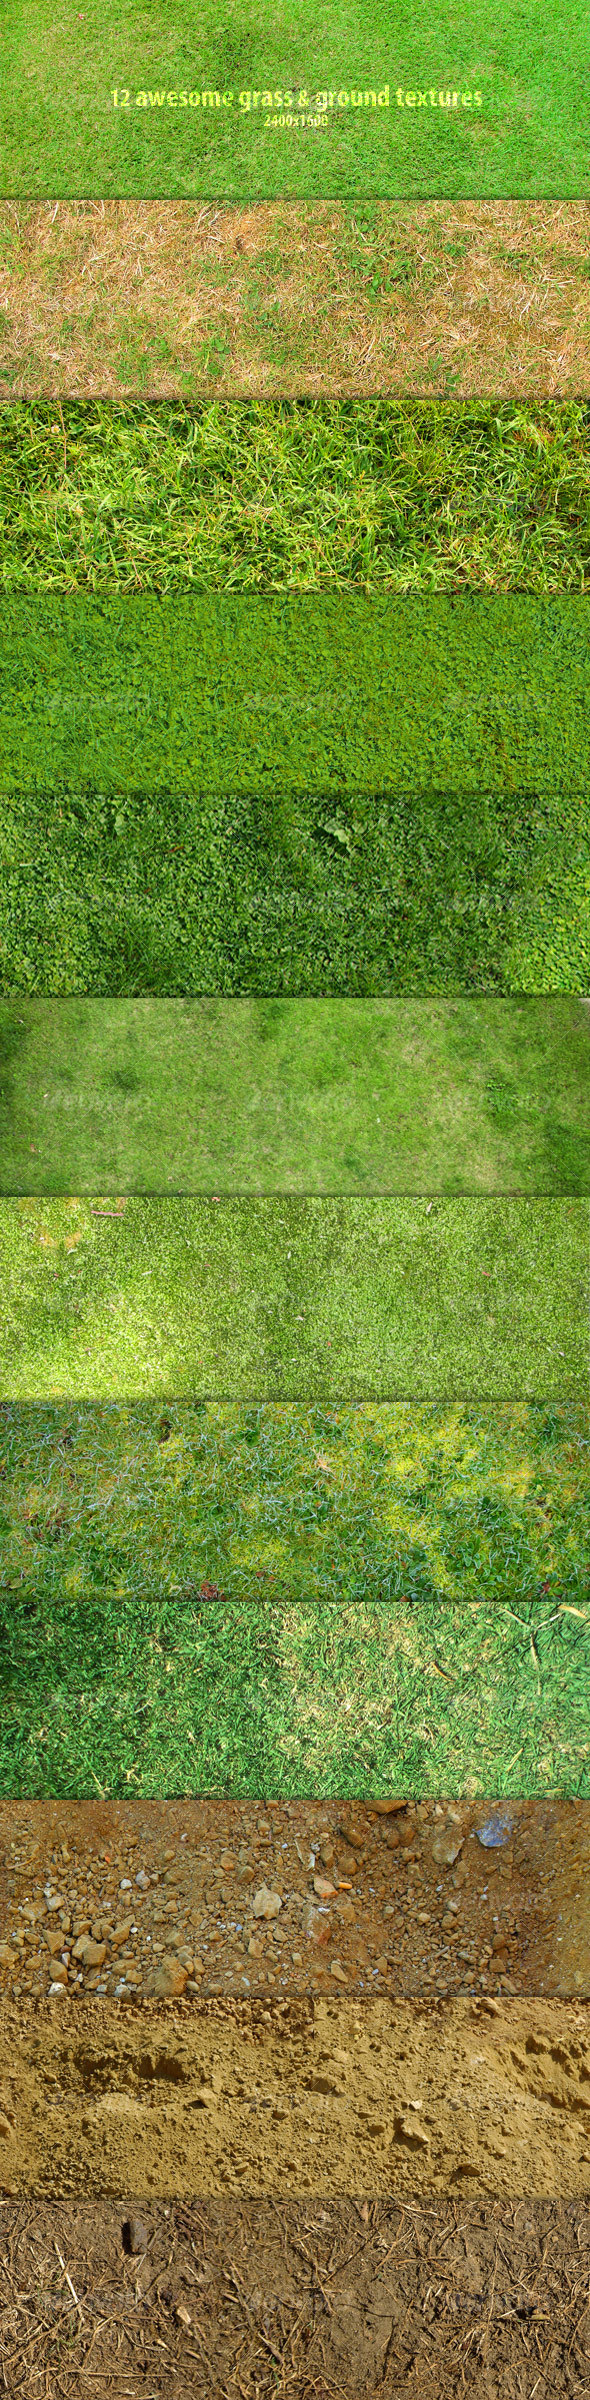 GraphicRiver 12 Awesome grass & ground textures 101020